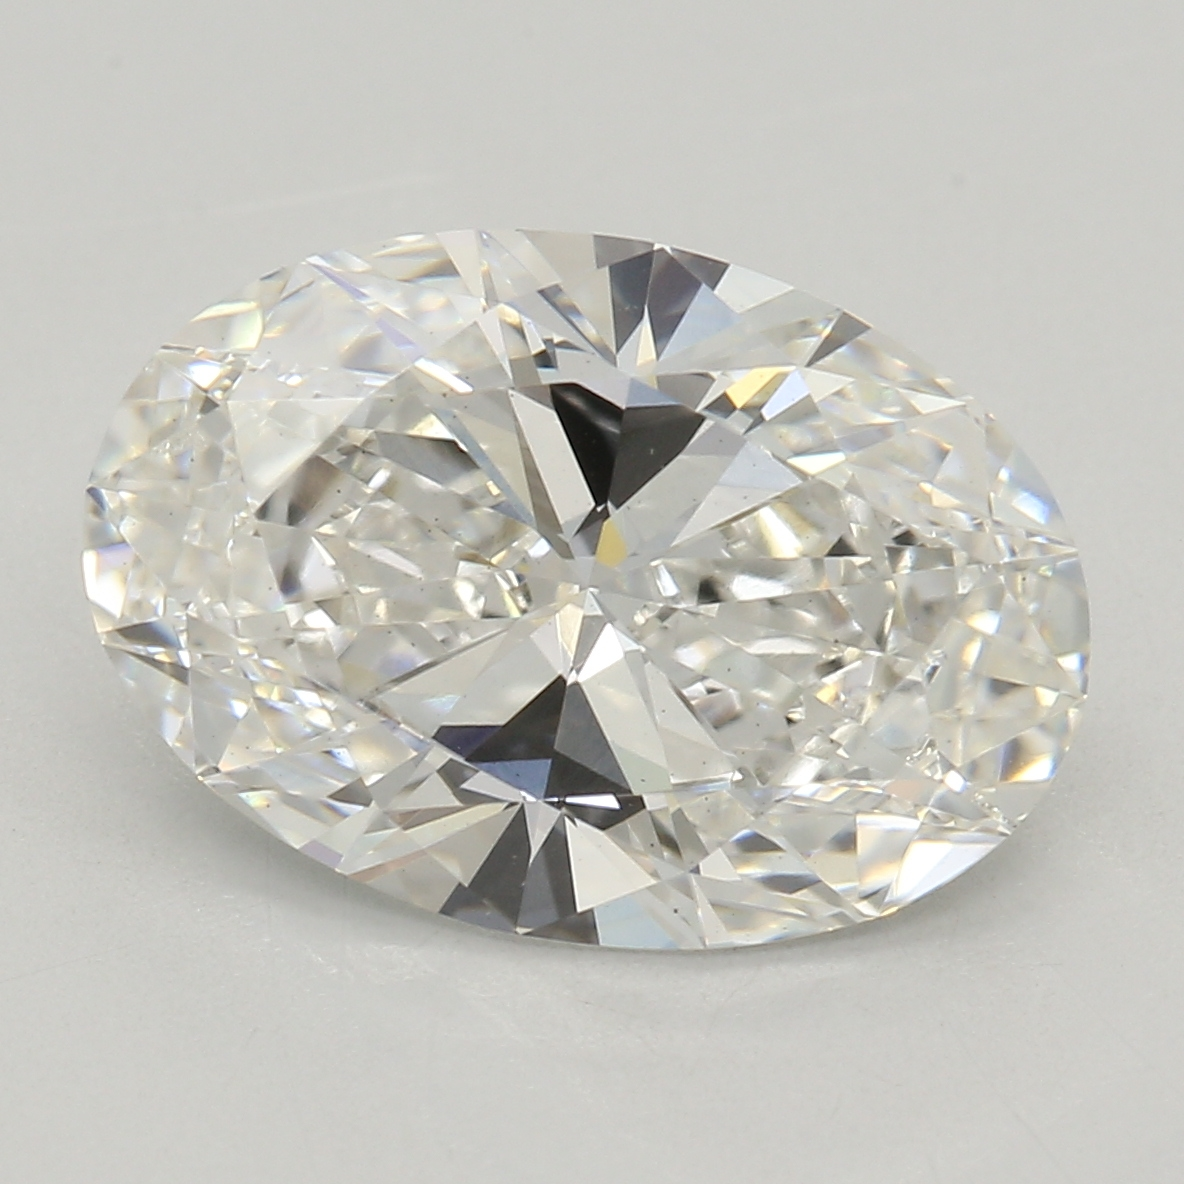 Oval Cut 2.02 Carat G Color Vs1 Clarity Sku Lg3650327